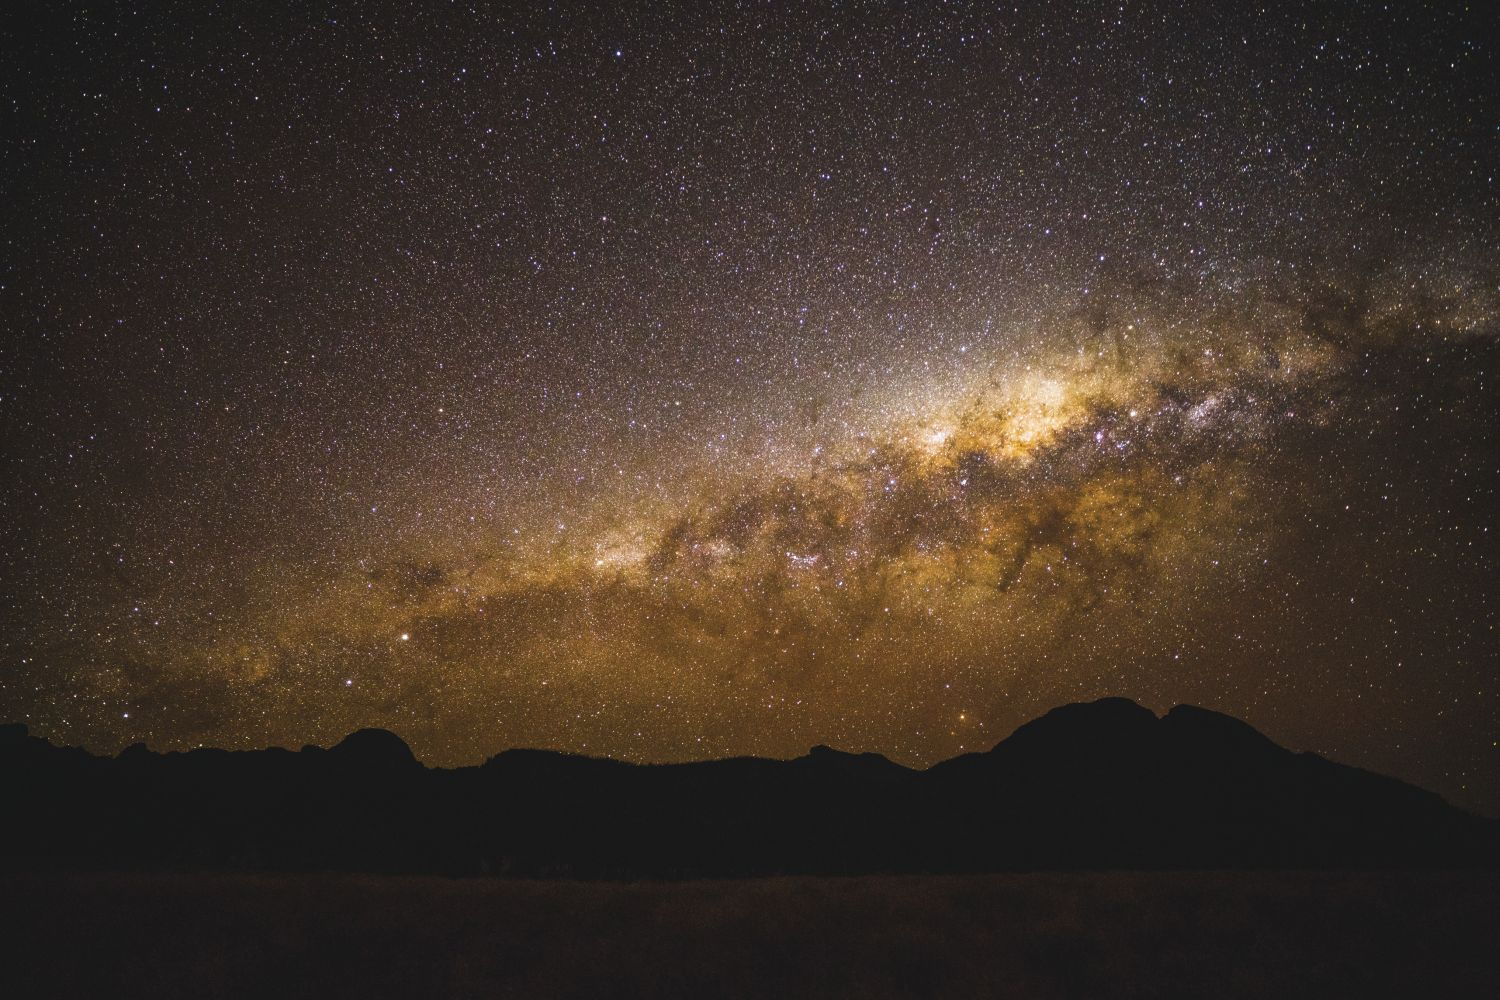 Dark Sky Park - Warrumbungle National Park